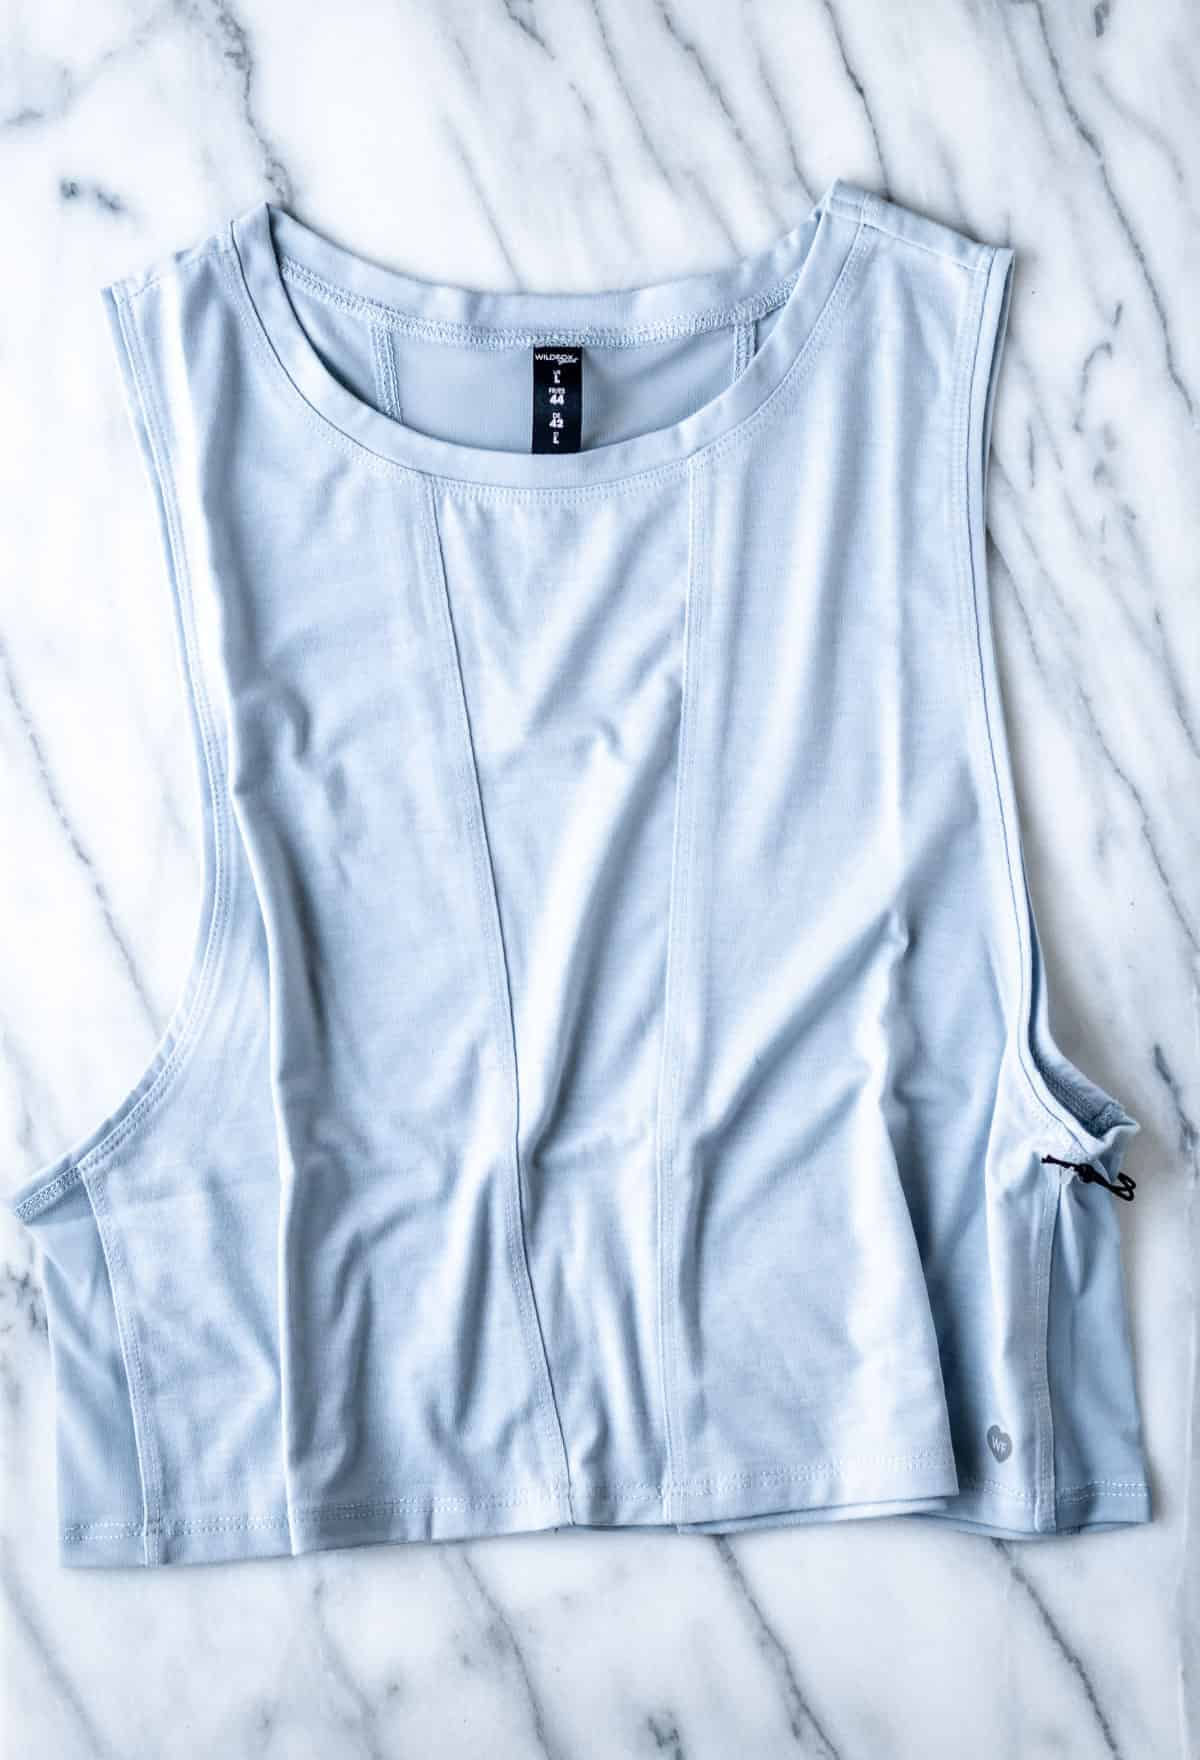 Wildfox Sweat Corrine Cropped Top on a marble background